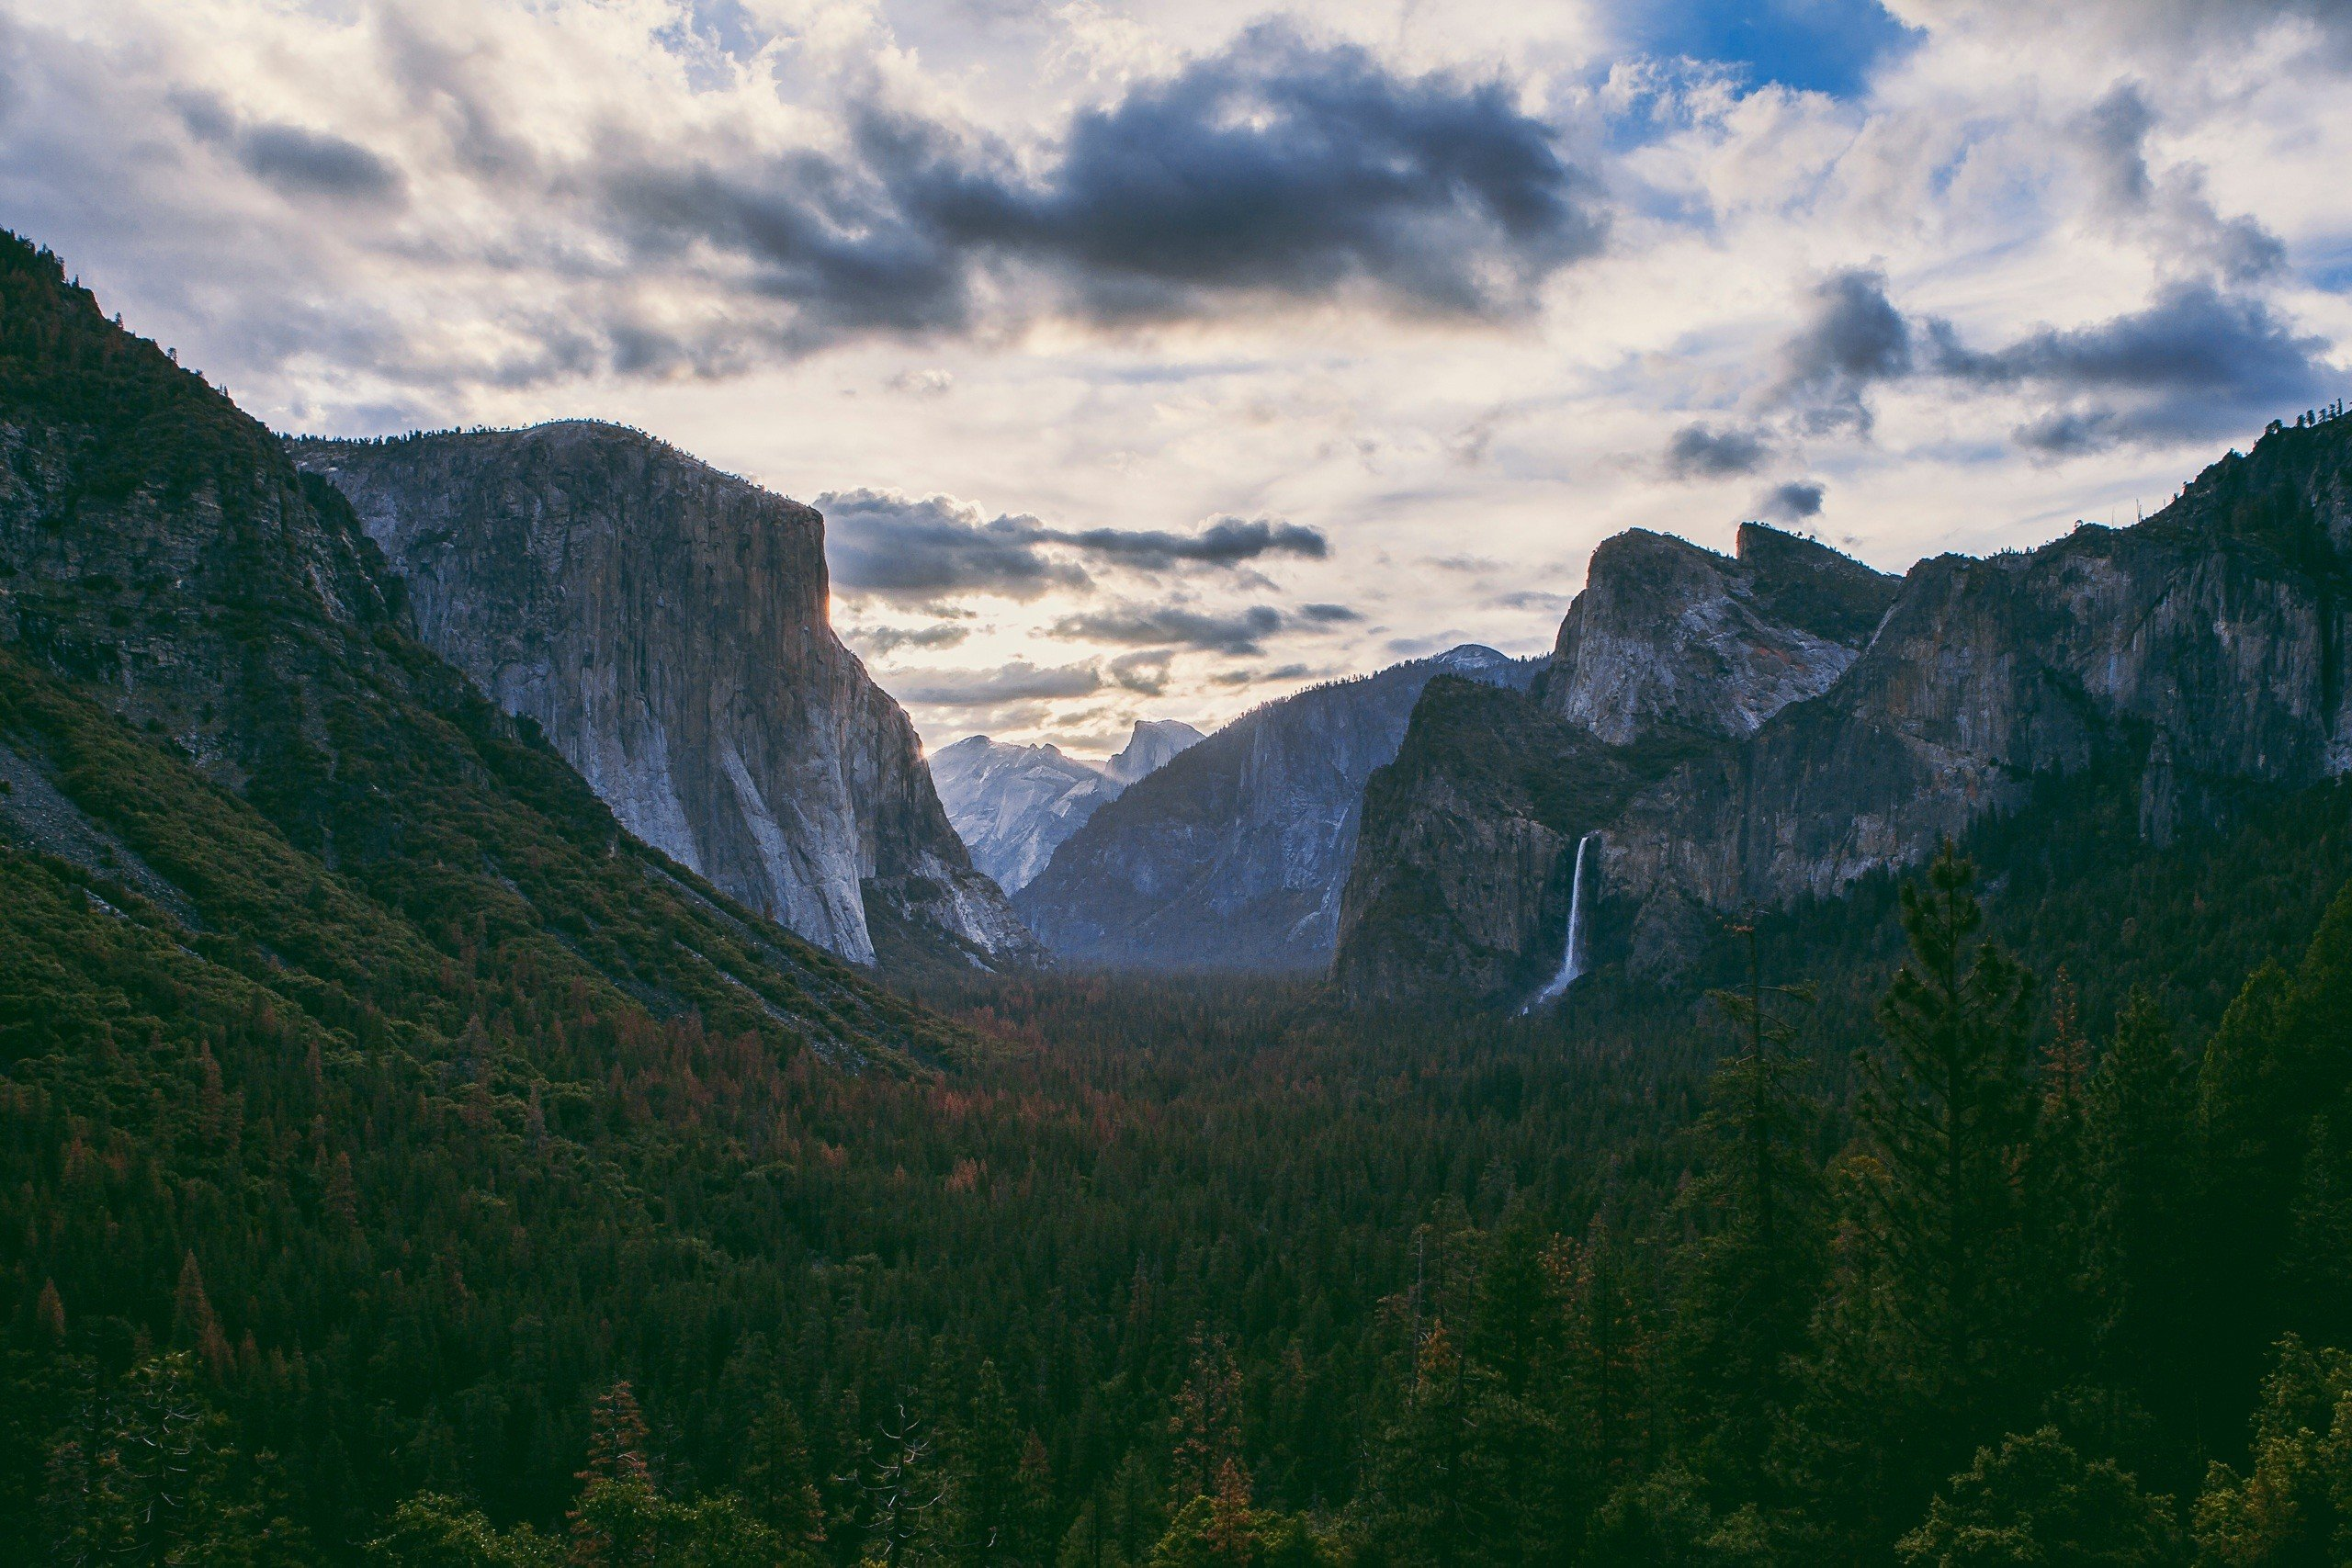 yosemite national park buddhist dating site Entertaining game to introduce you to one of the usa's most famous national parks 40 photos interesting spoken facts yosemite national park usa 1.